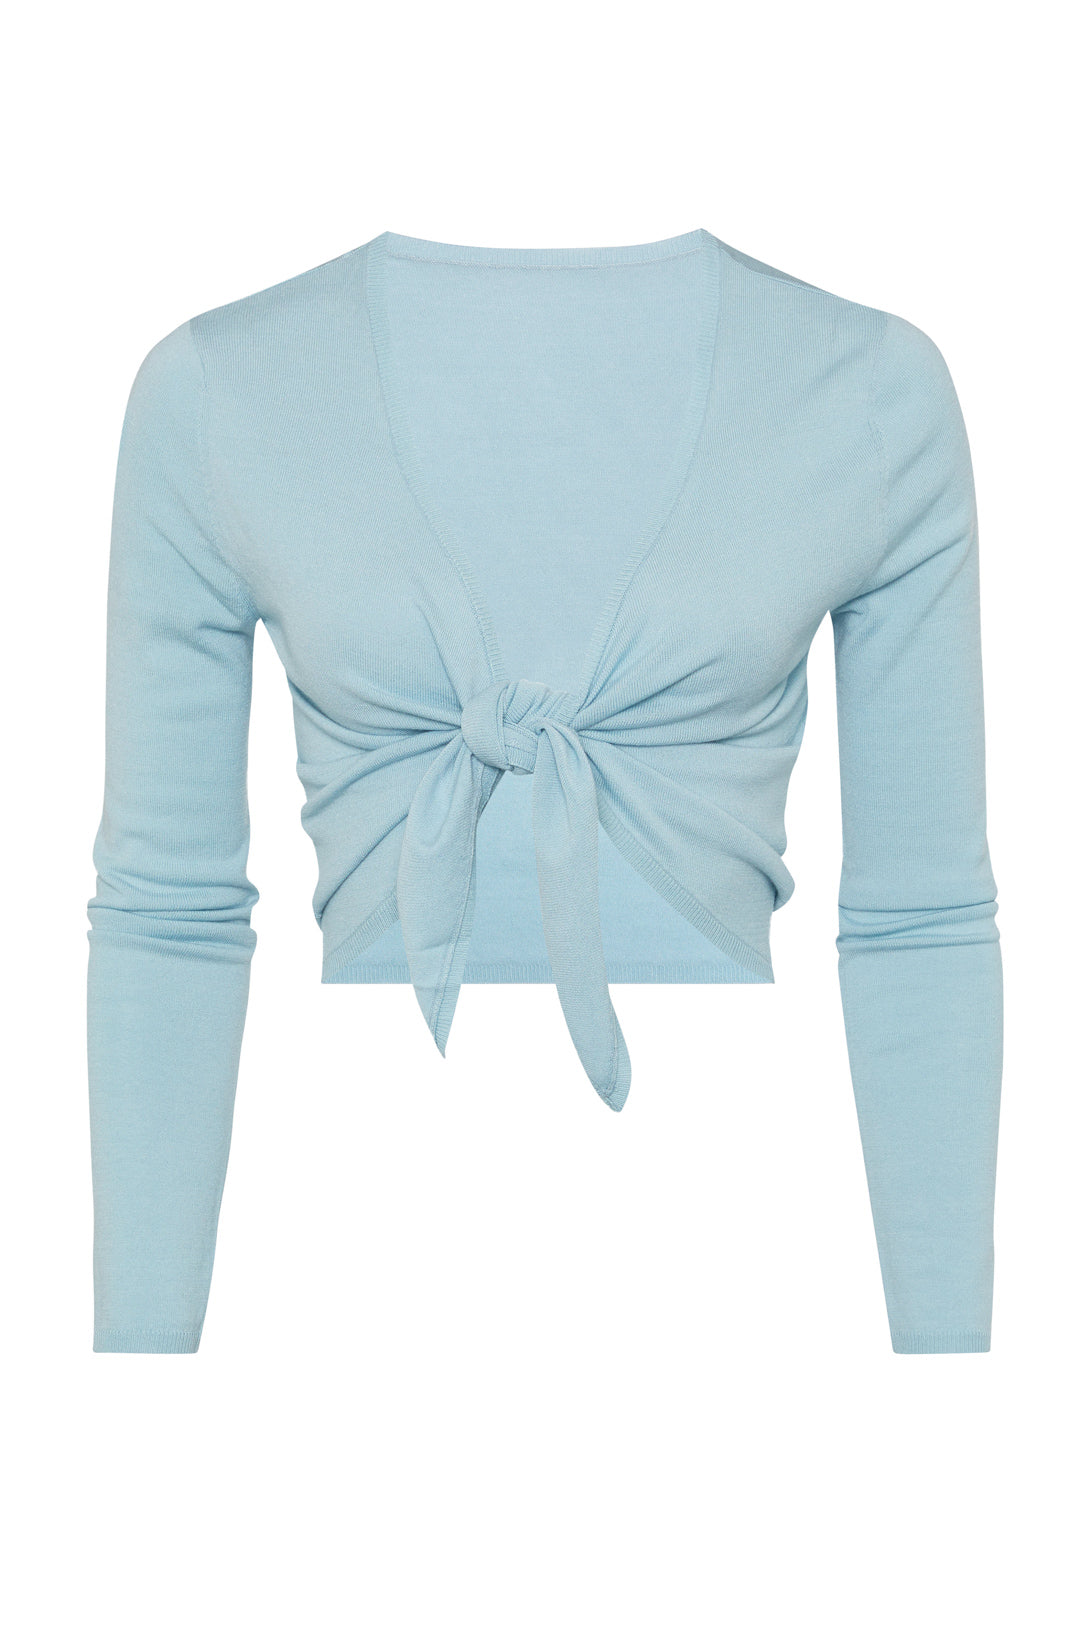 Cocoon Tie Front Top - Soft Blue